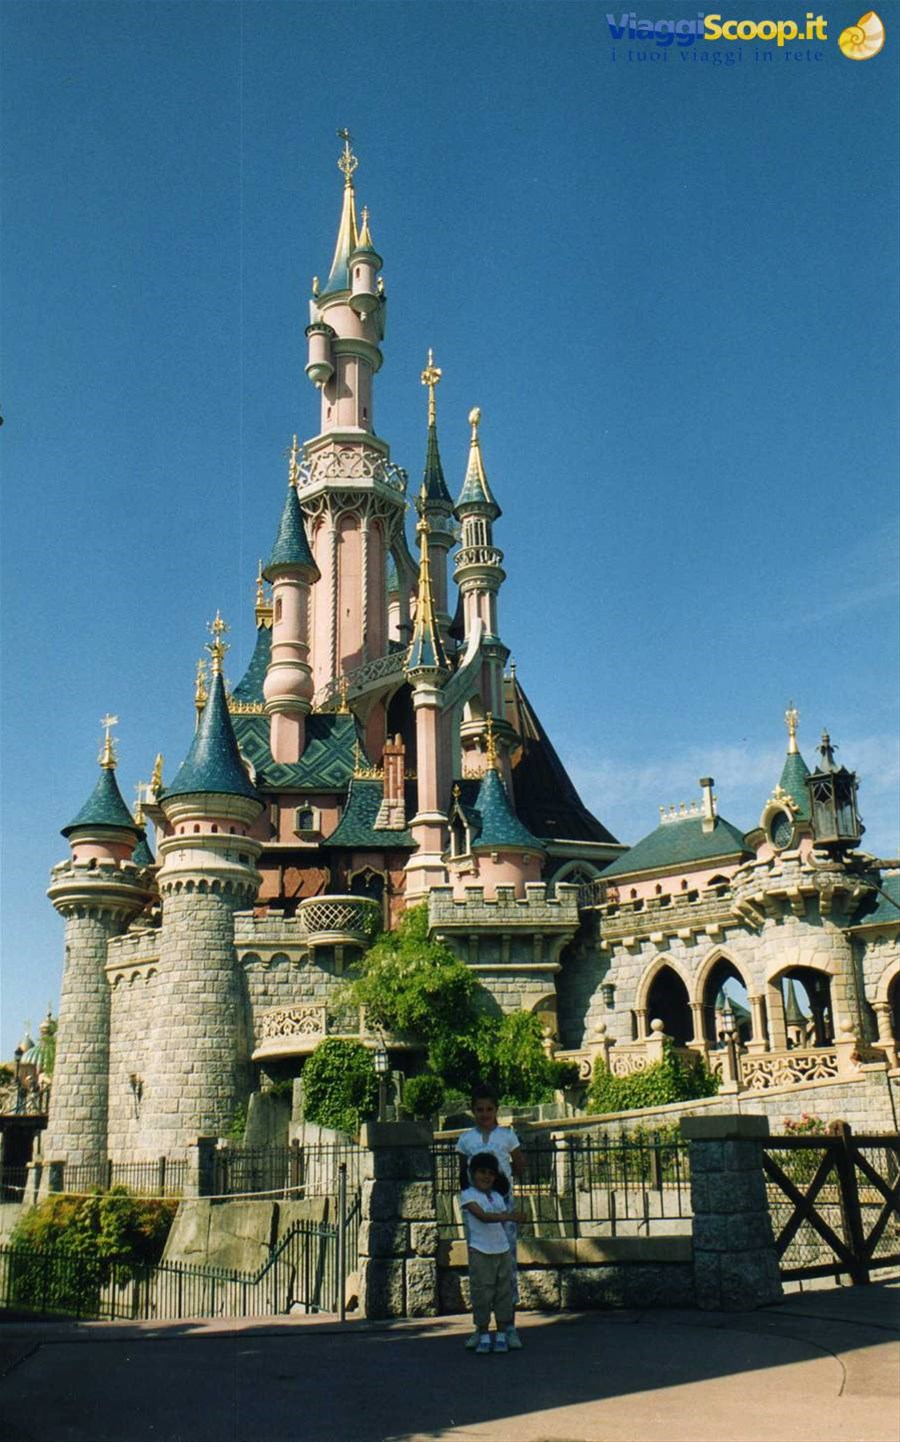 DISNEYLAND RESORT FRANCIA